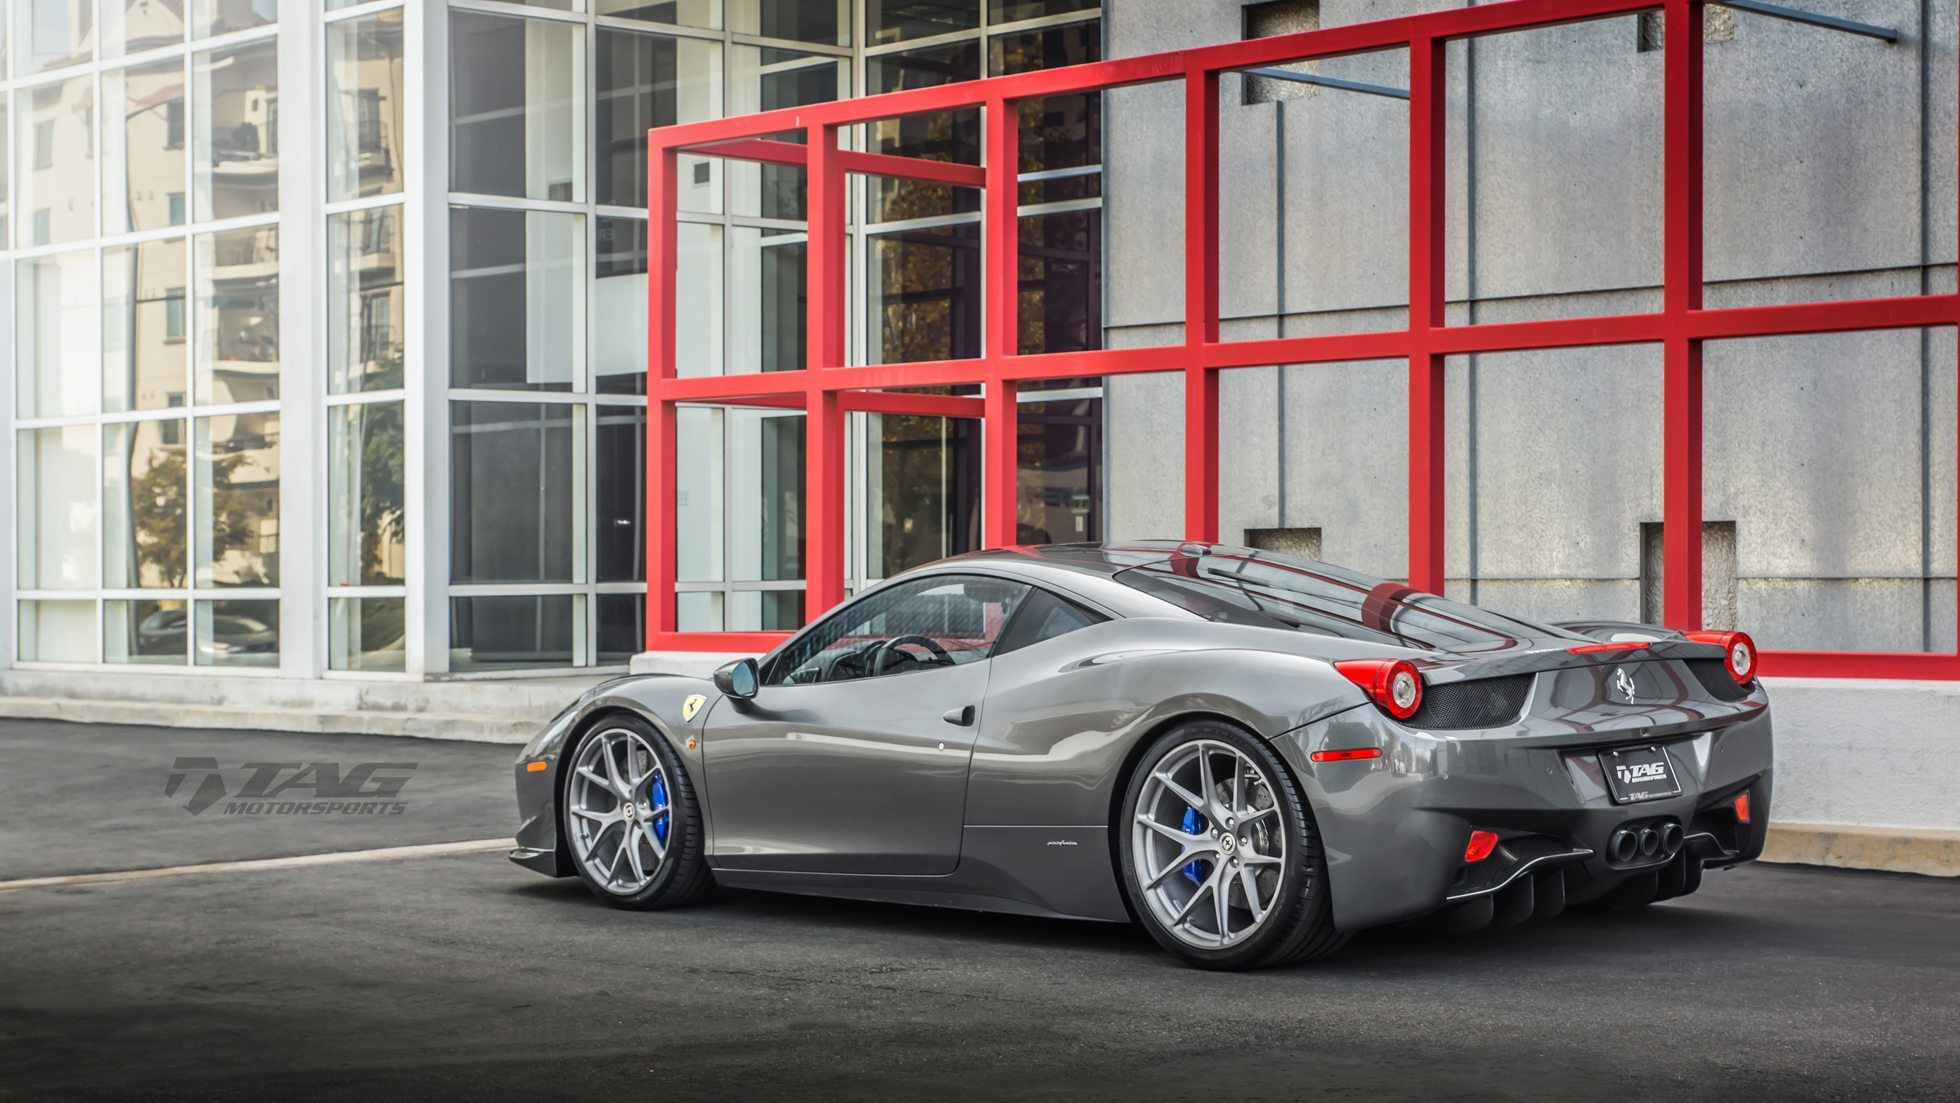 Ferrari 458 With HRE P101 Wheels By TAG Motorsports -